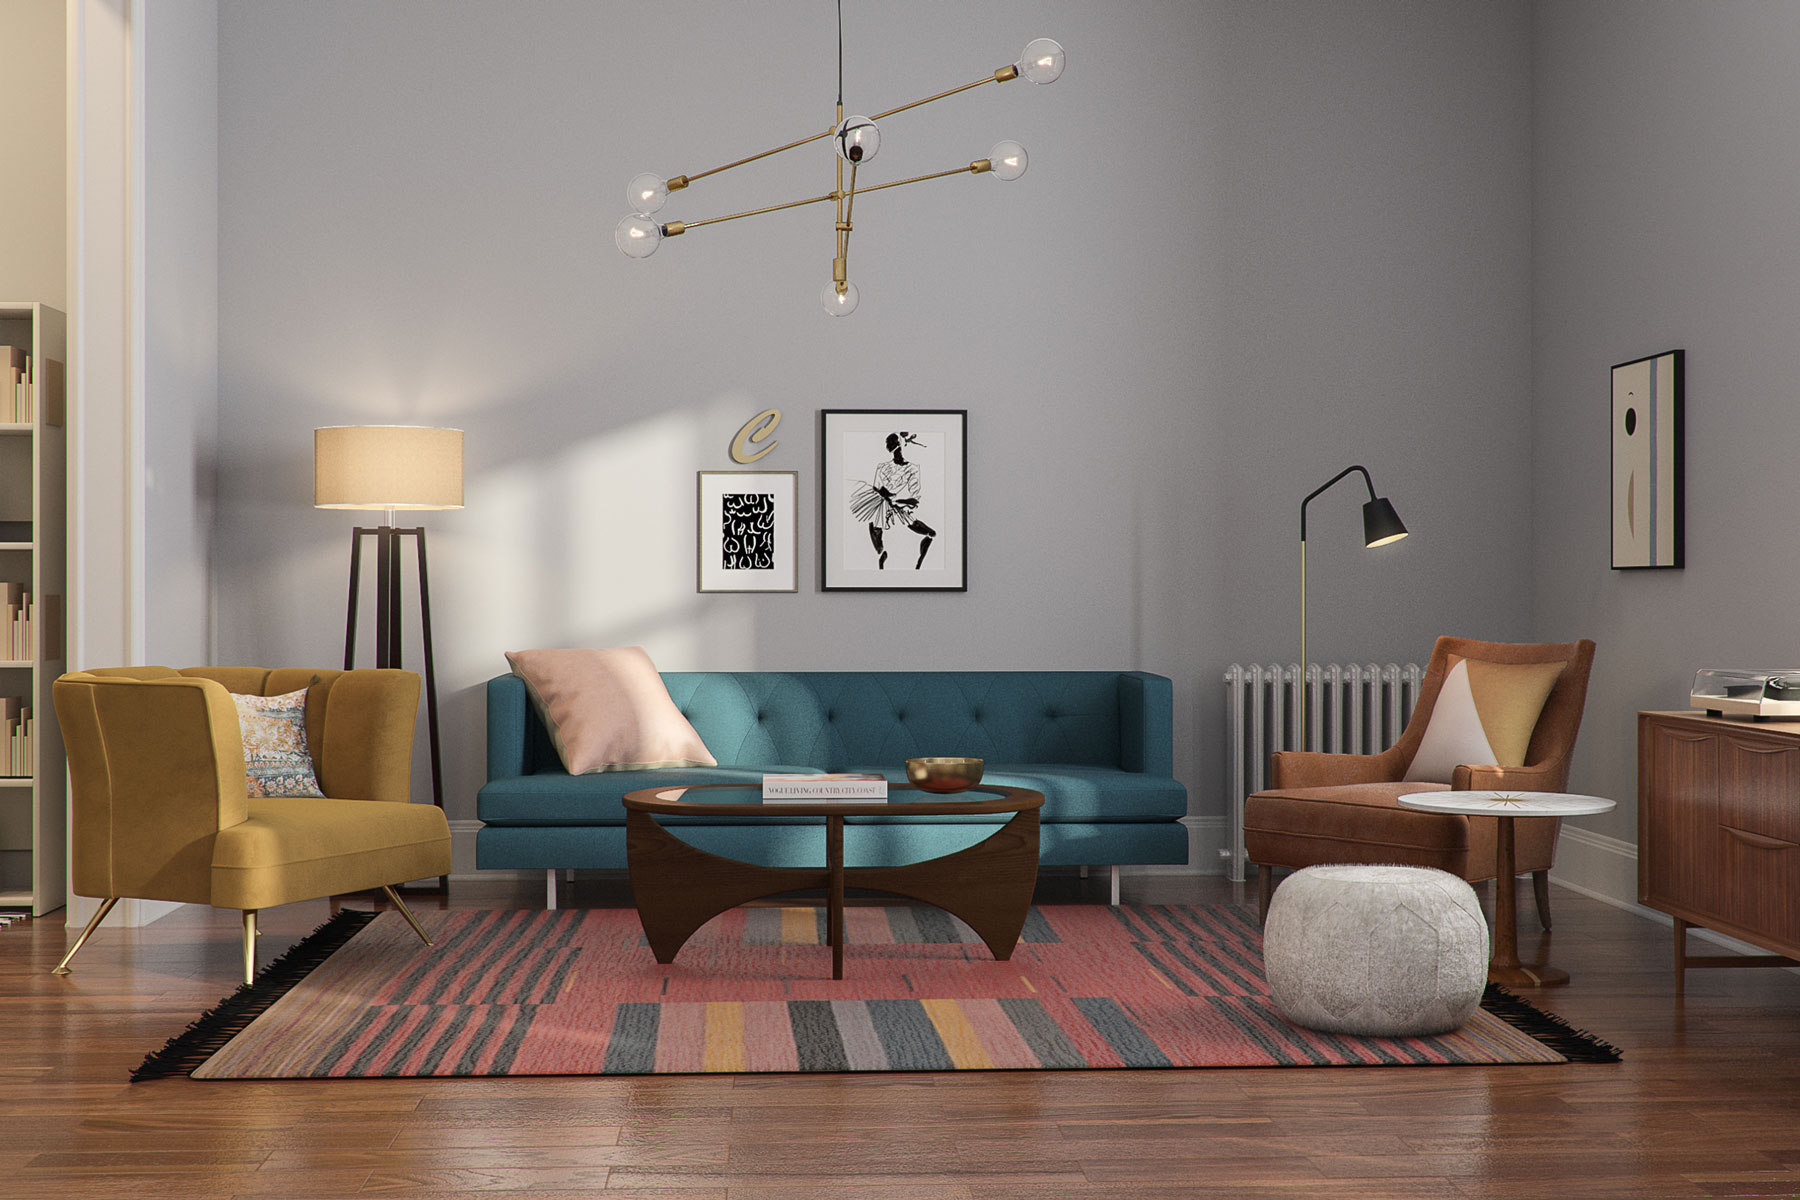 Carrie Bradshaw's Sex and the City apartment - living room